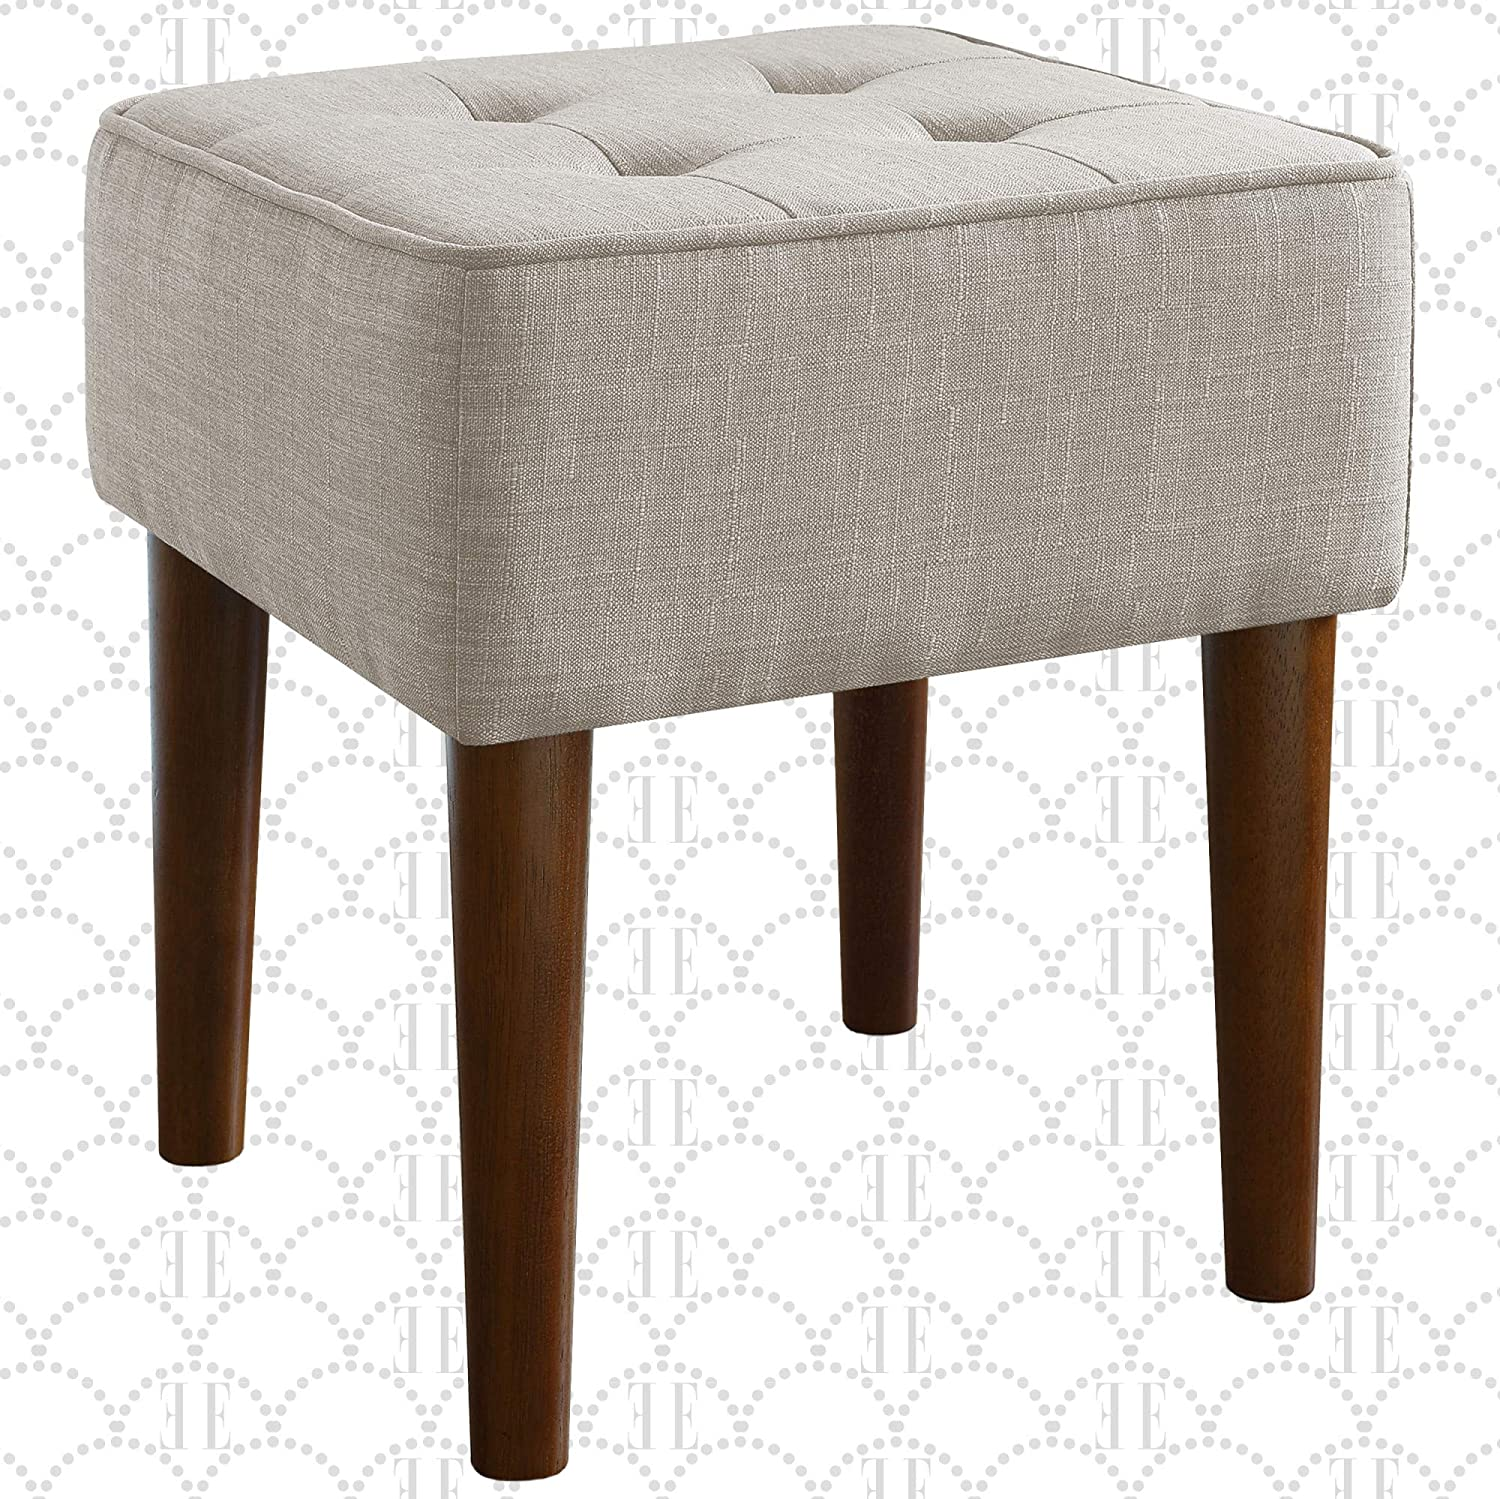 Elle Decor Aria Upholstered Ottoman Food Rest Stool with Classic Button Tufted Style, Extra Seating for Modern Home, Compact Size for Small Space, Light Gray